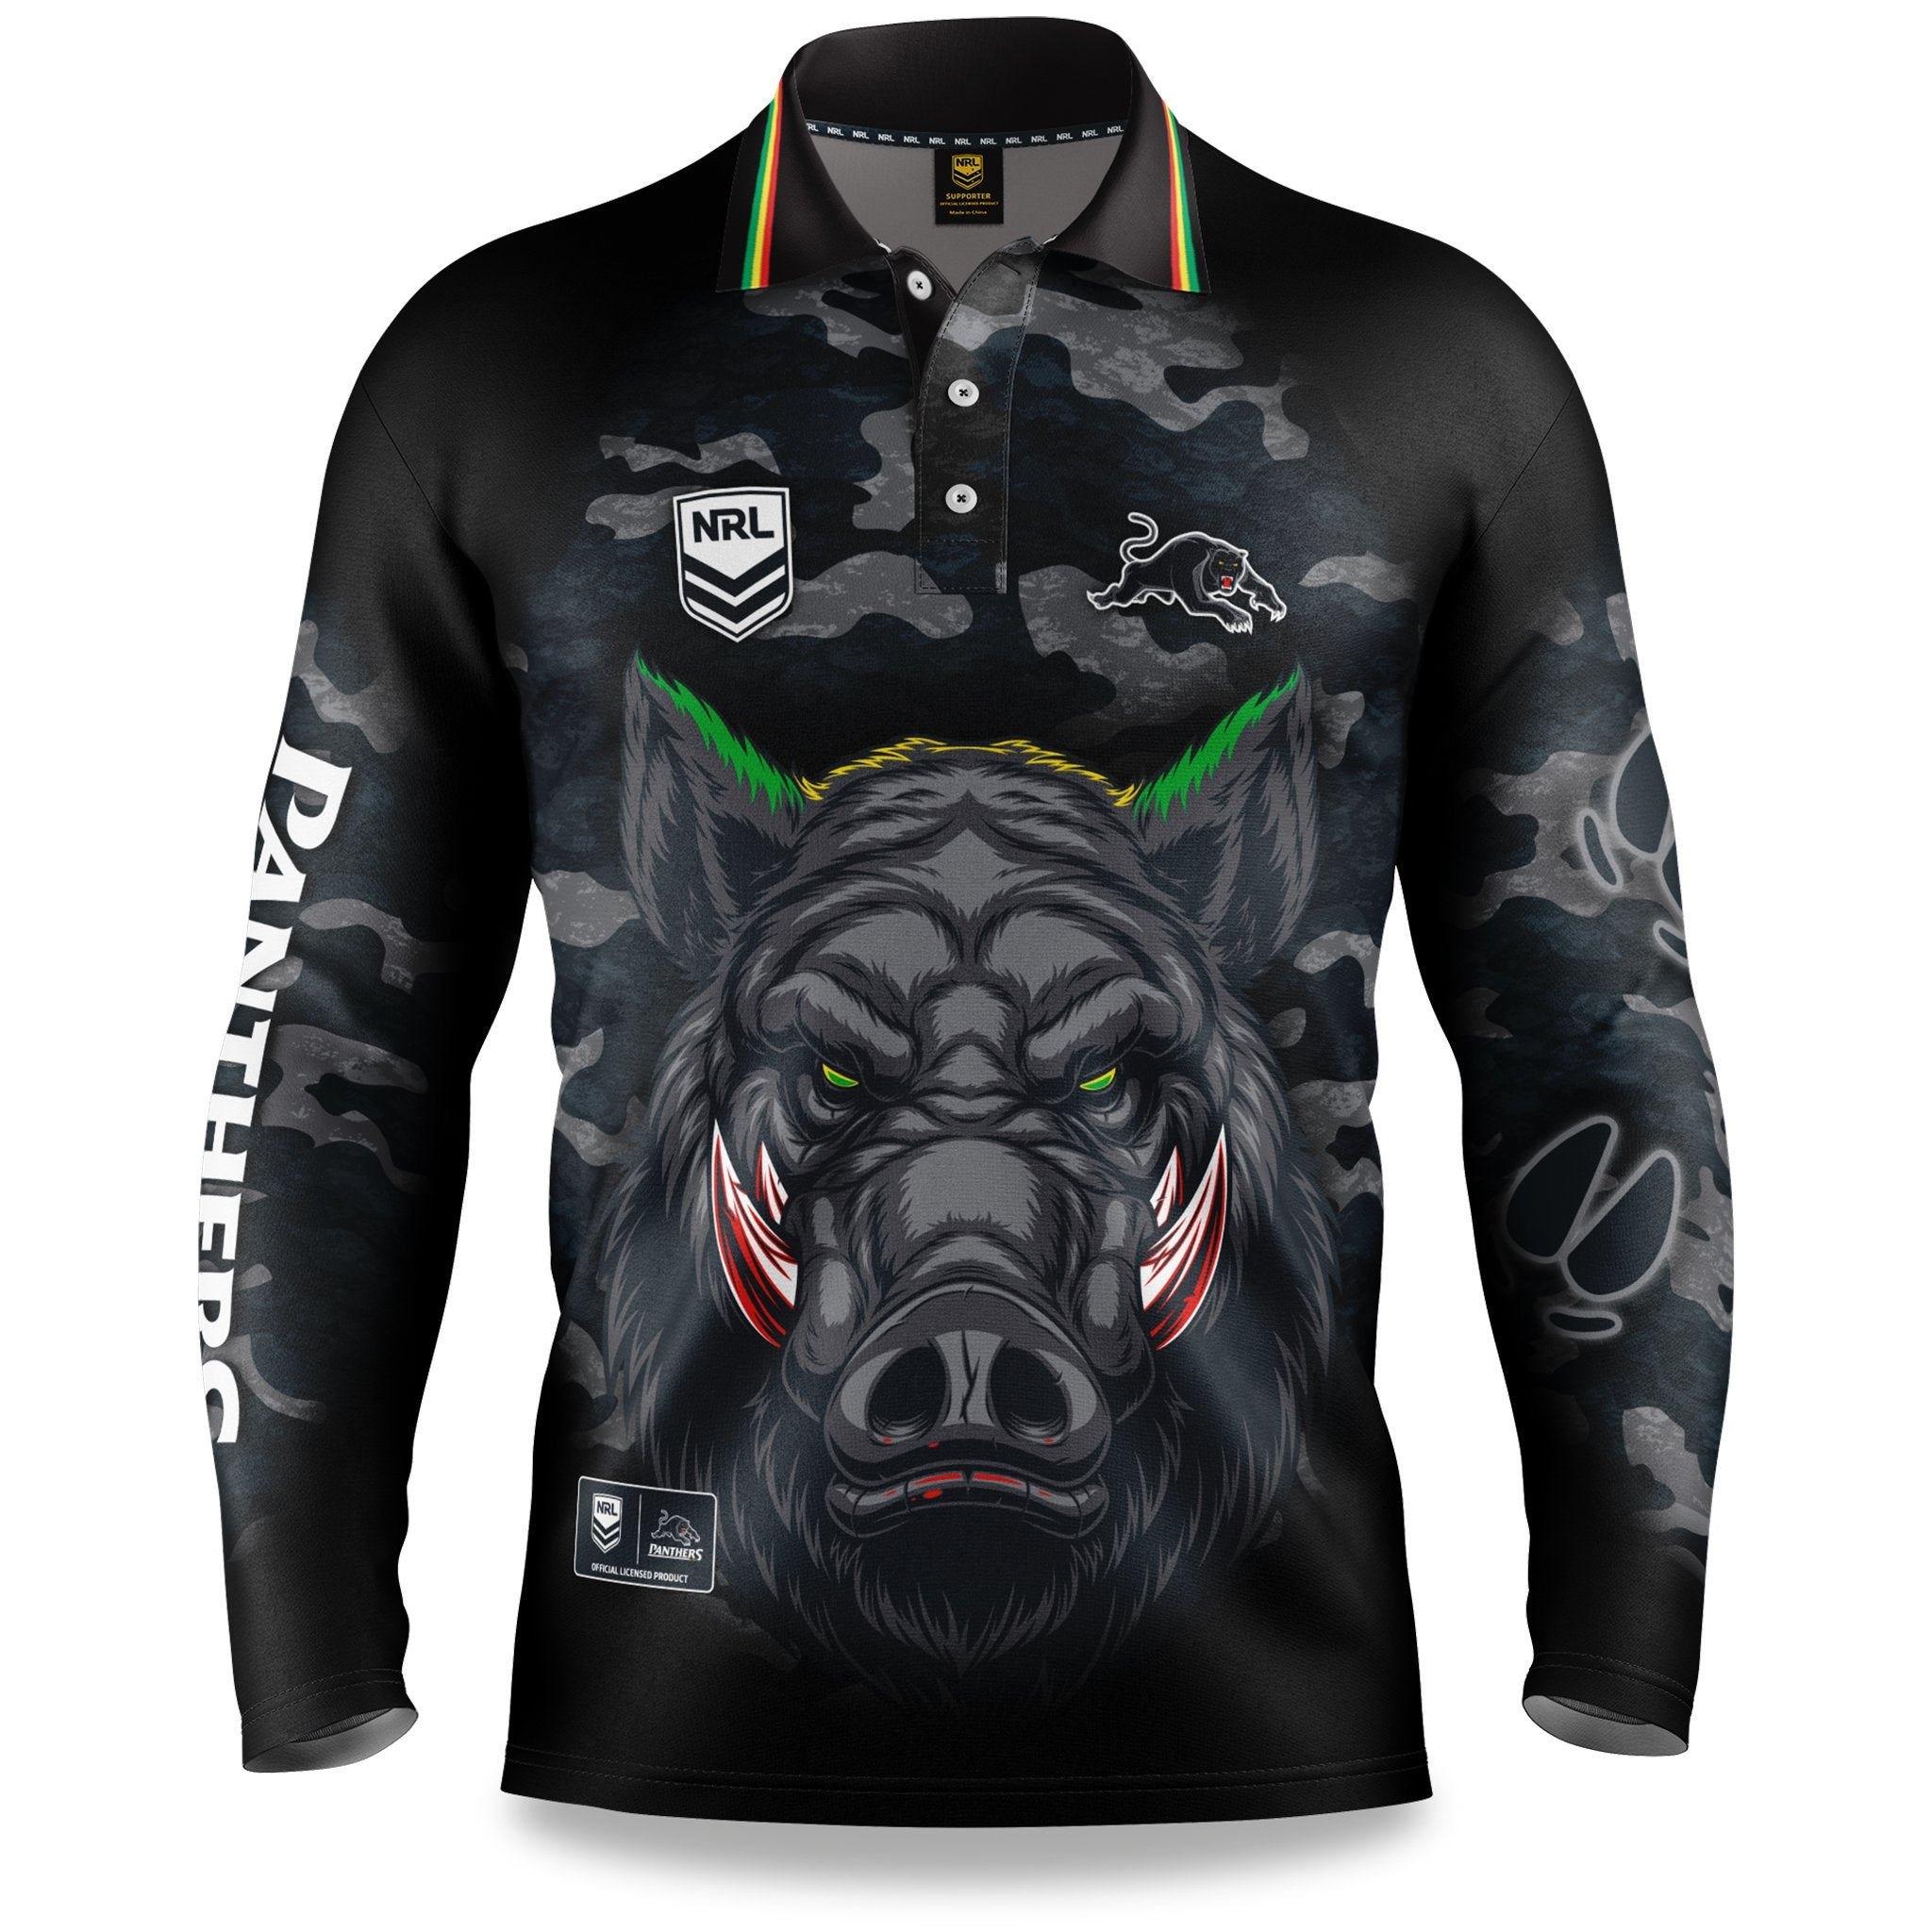 Outback Shirt NRL Panthers 20